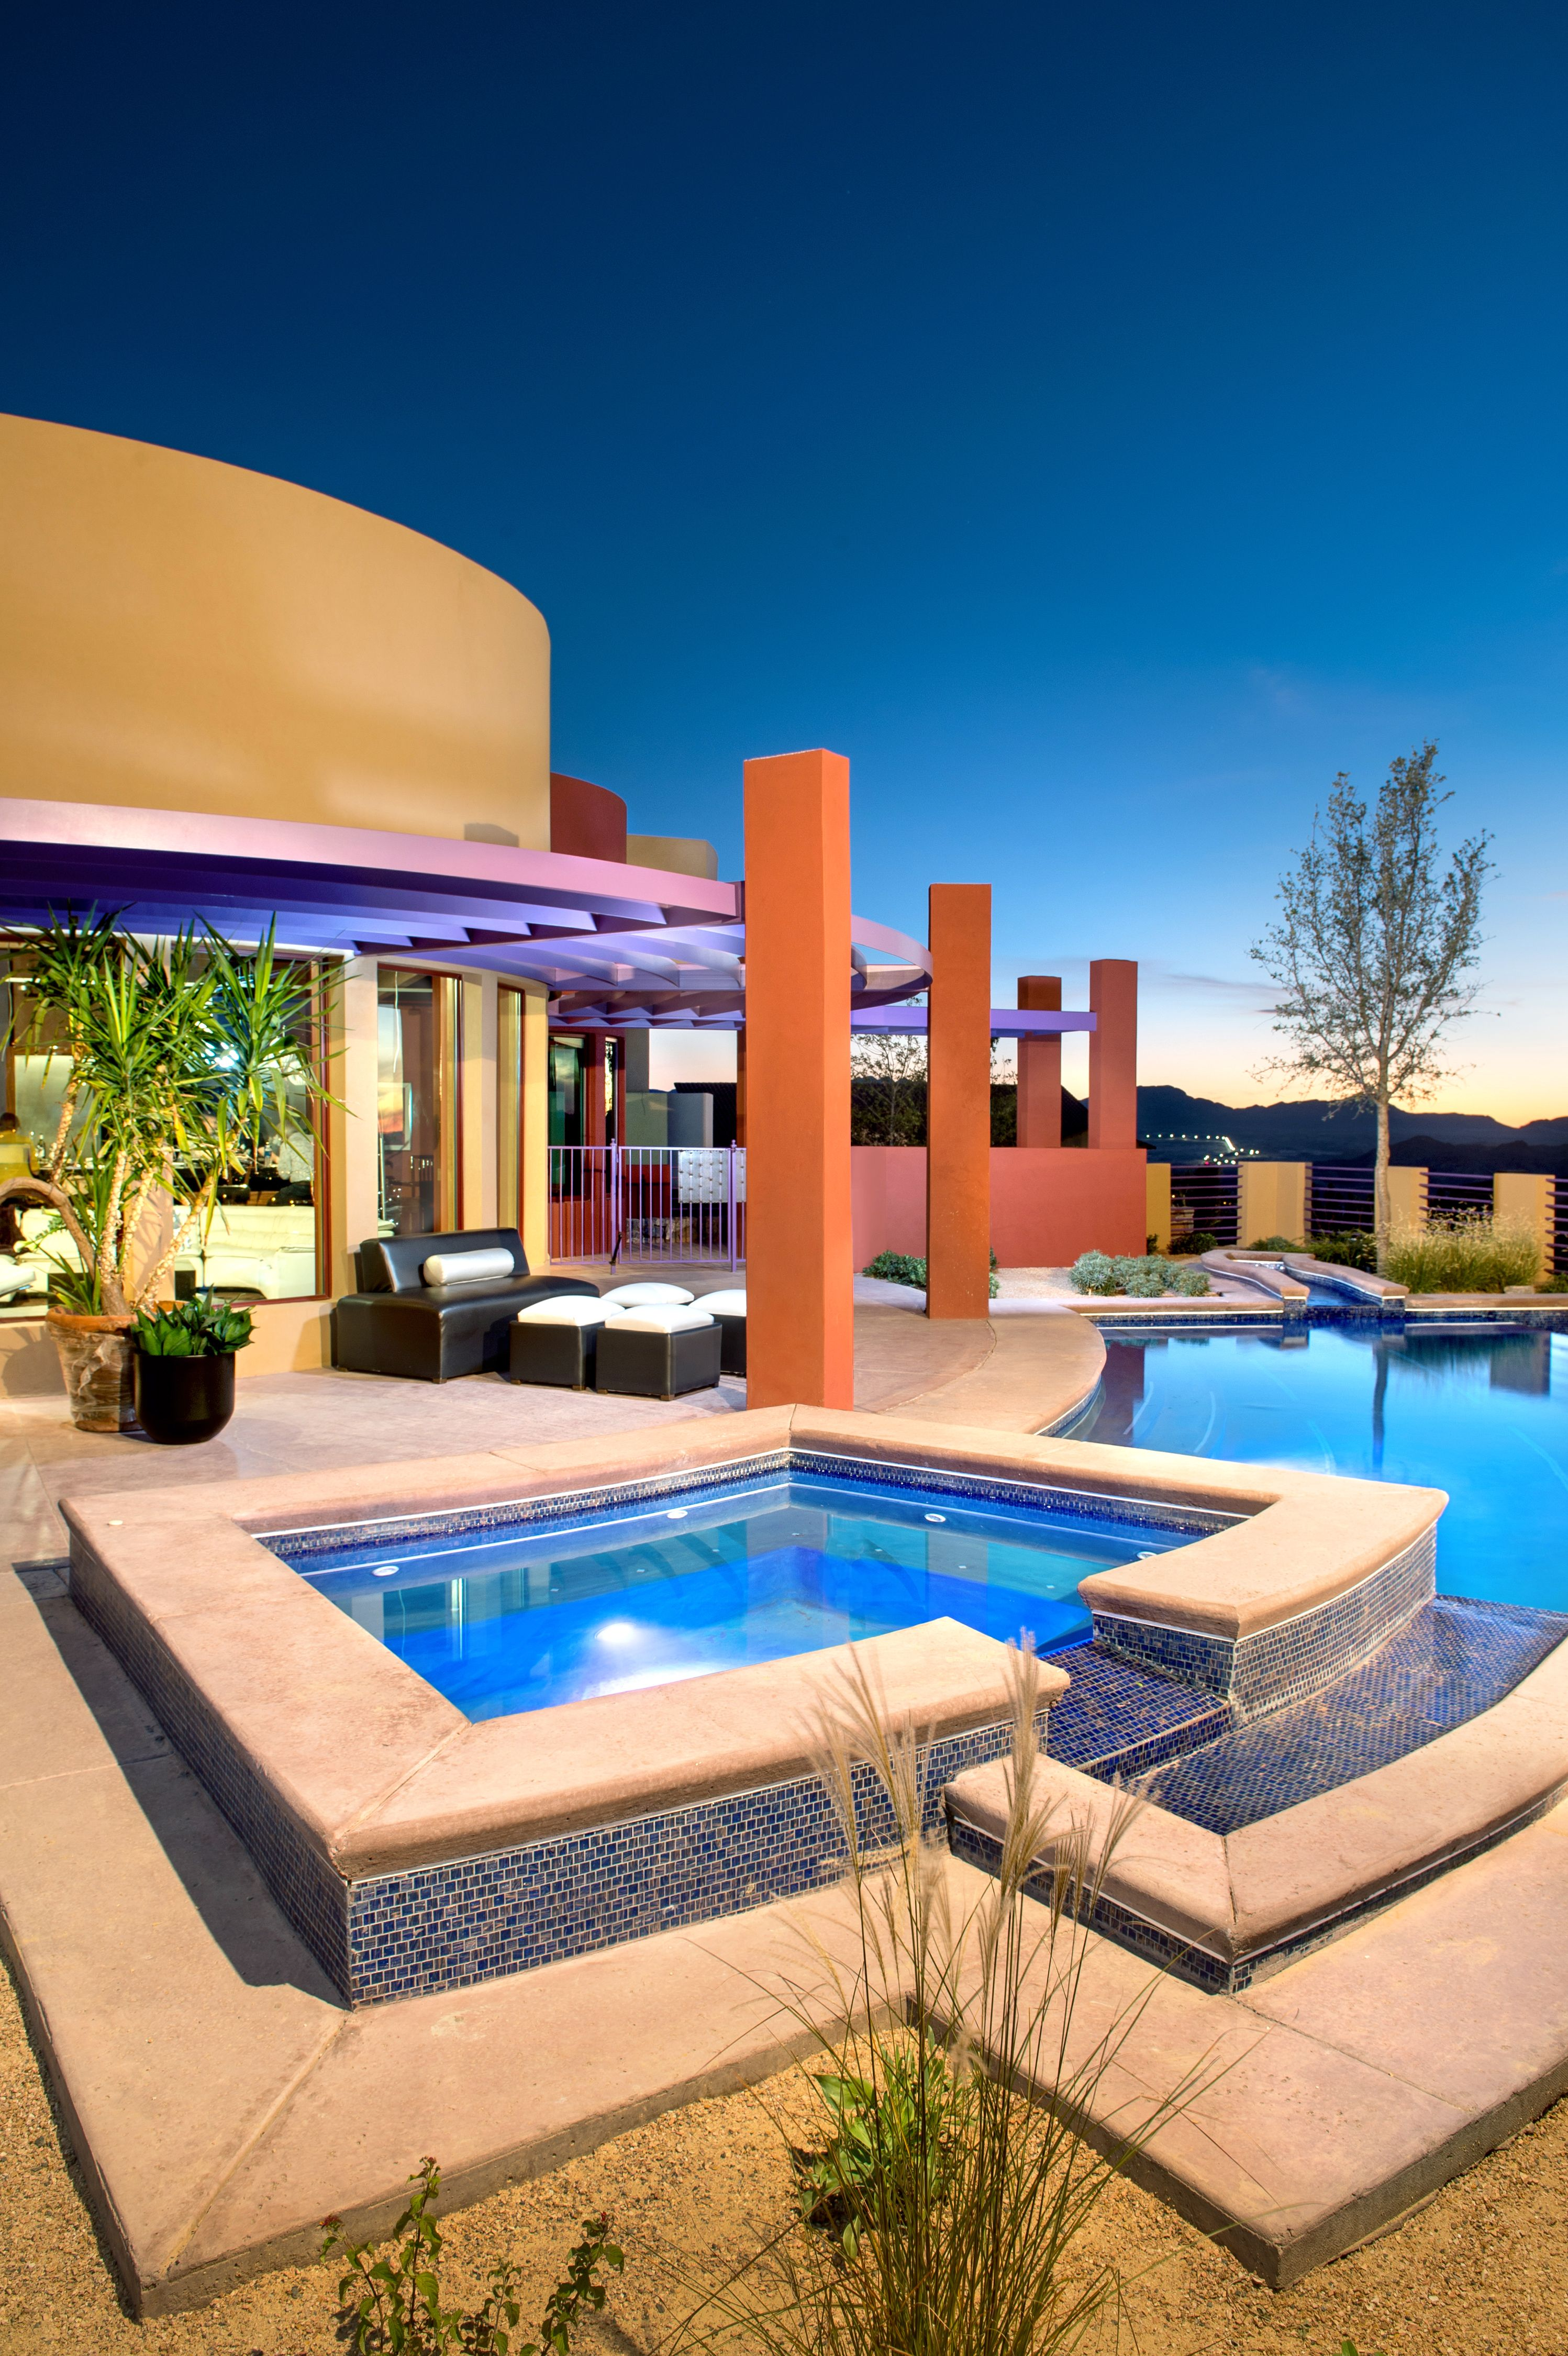 Now That Is An Outdoor Living Space Su Casa El Paso Southern New Mexico Pinterest